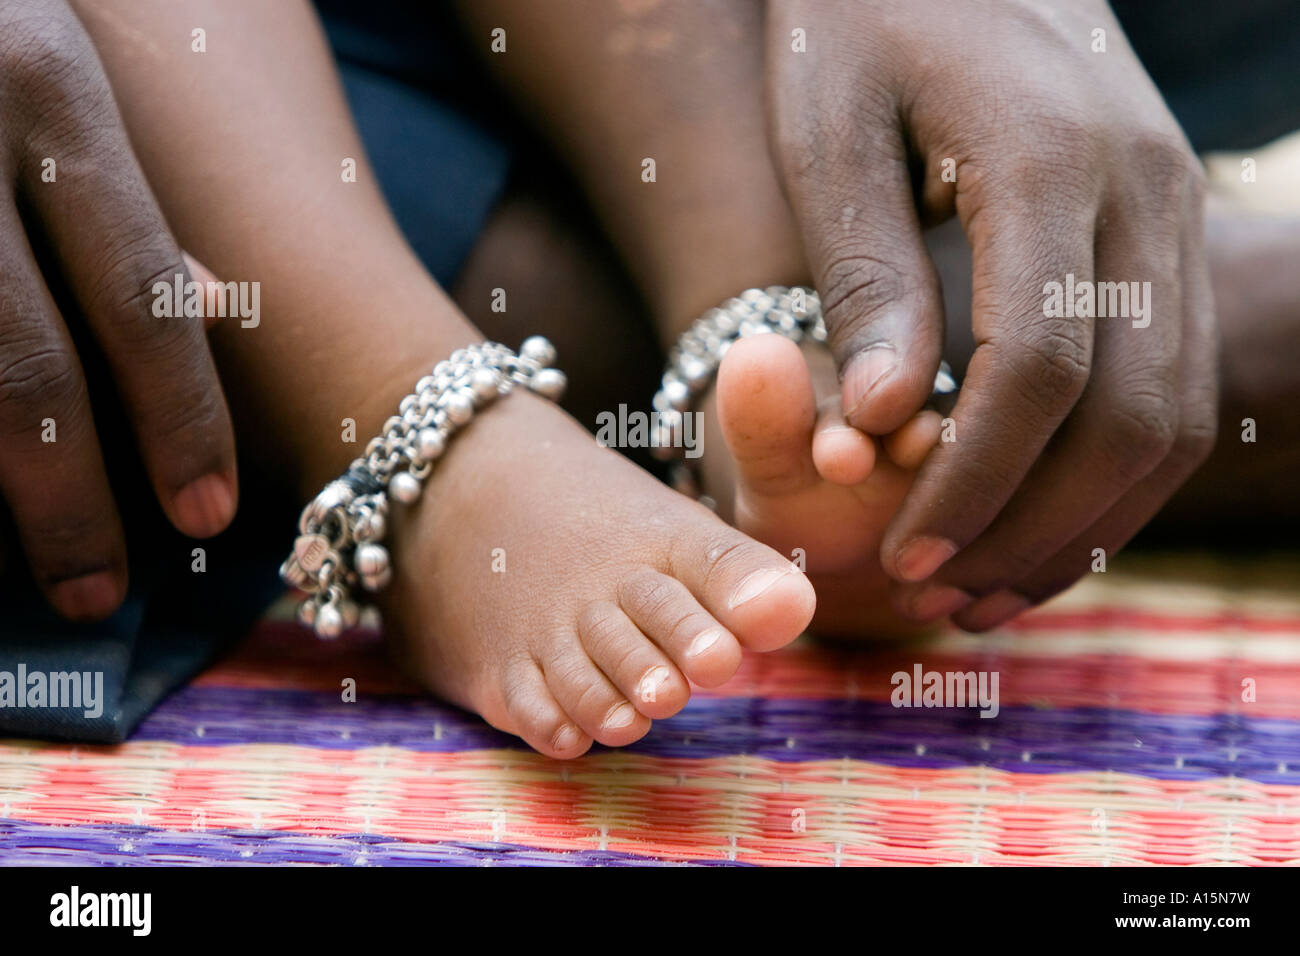 Indian Babies Bare Feet With Ankle Bracelets India